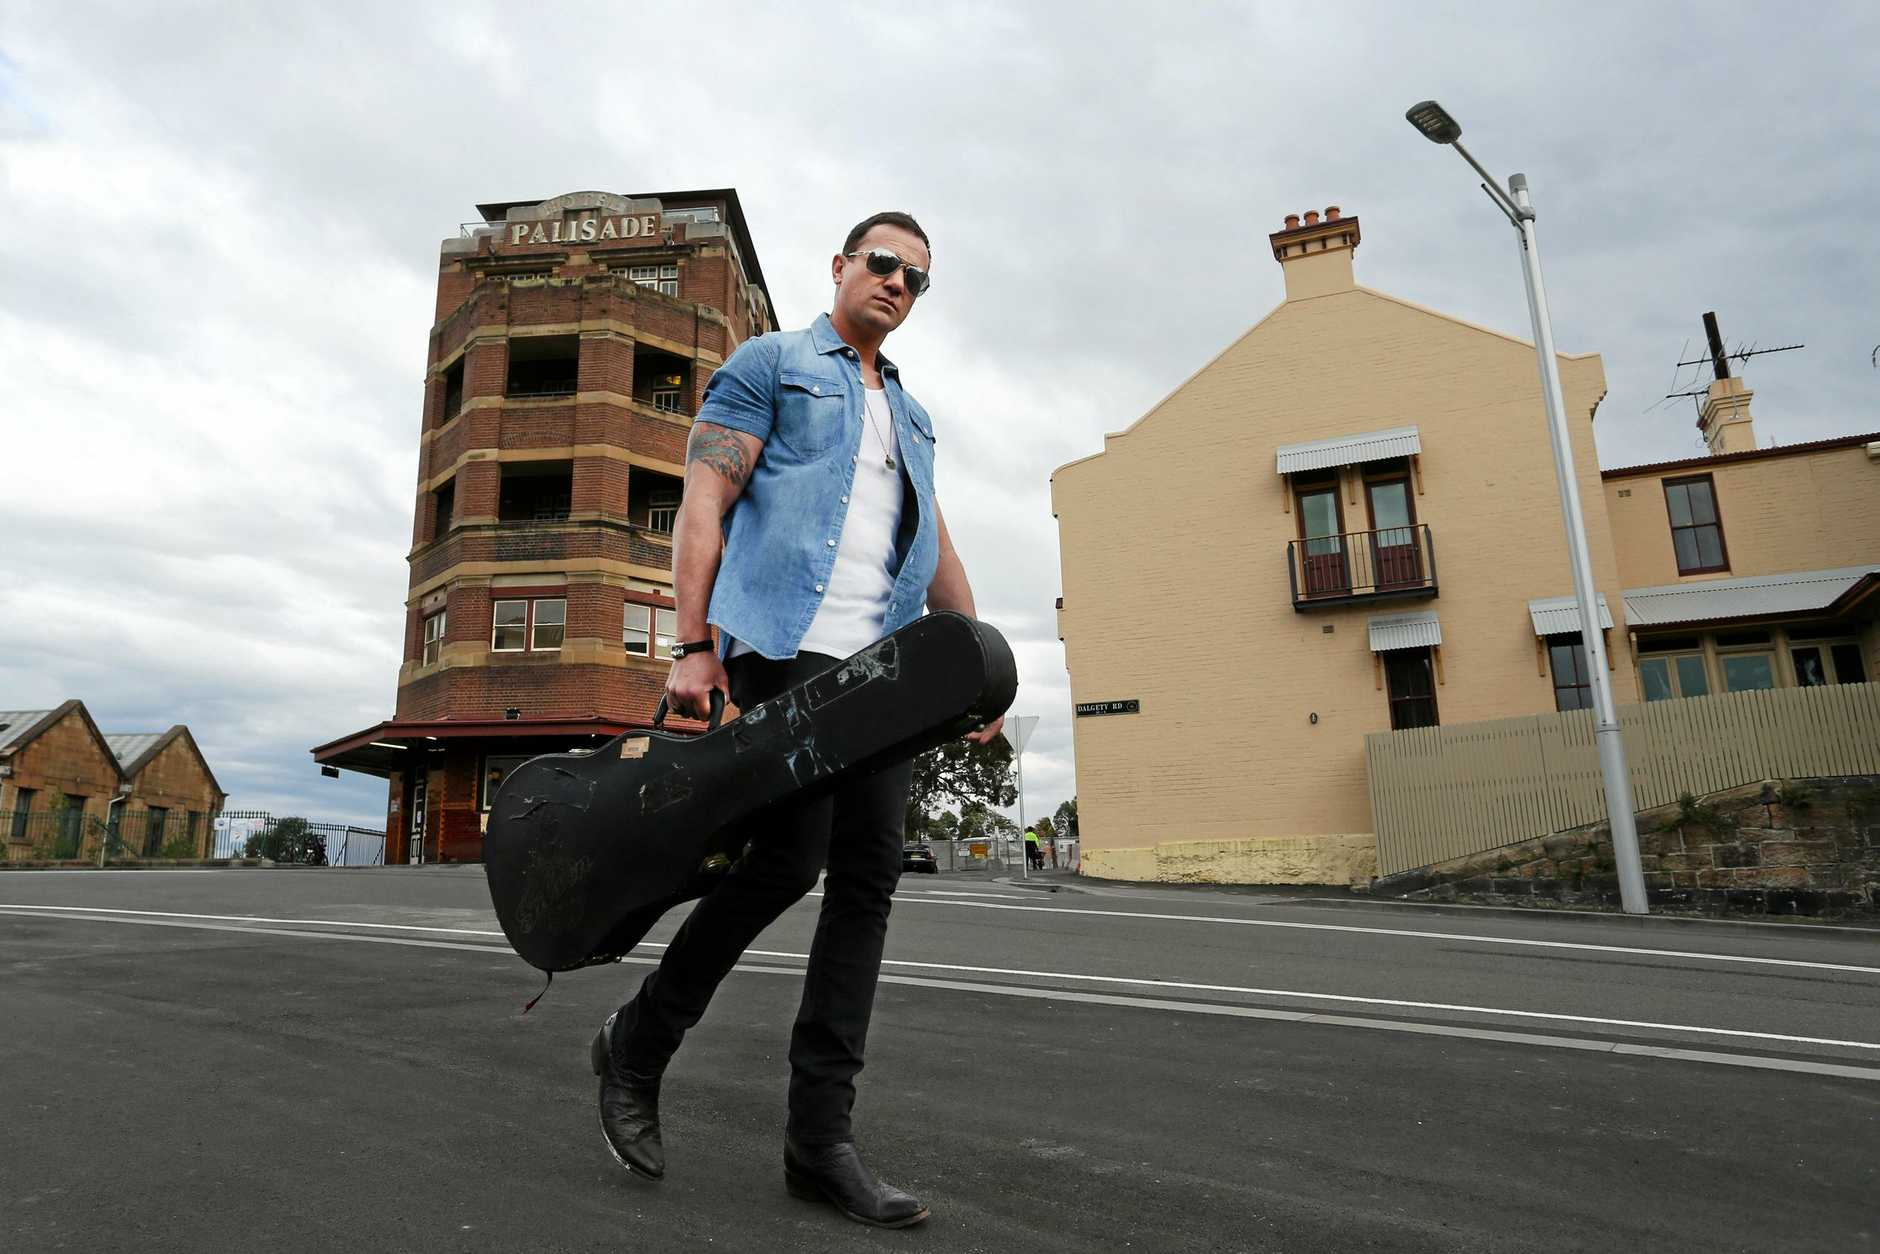 Shannon Noll will perform in Ipswich at The Racehorse Hotel on October 19.